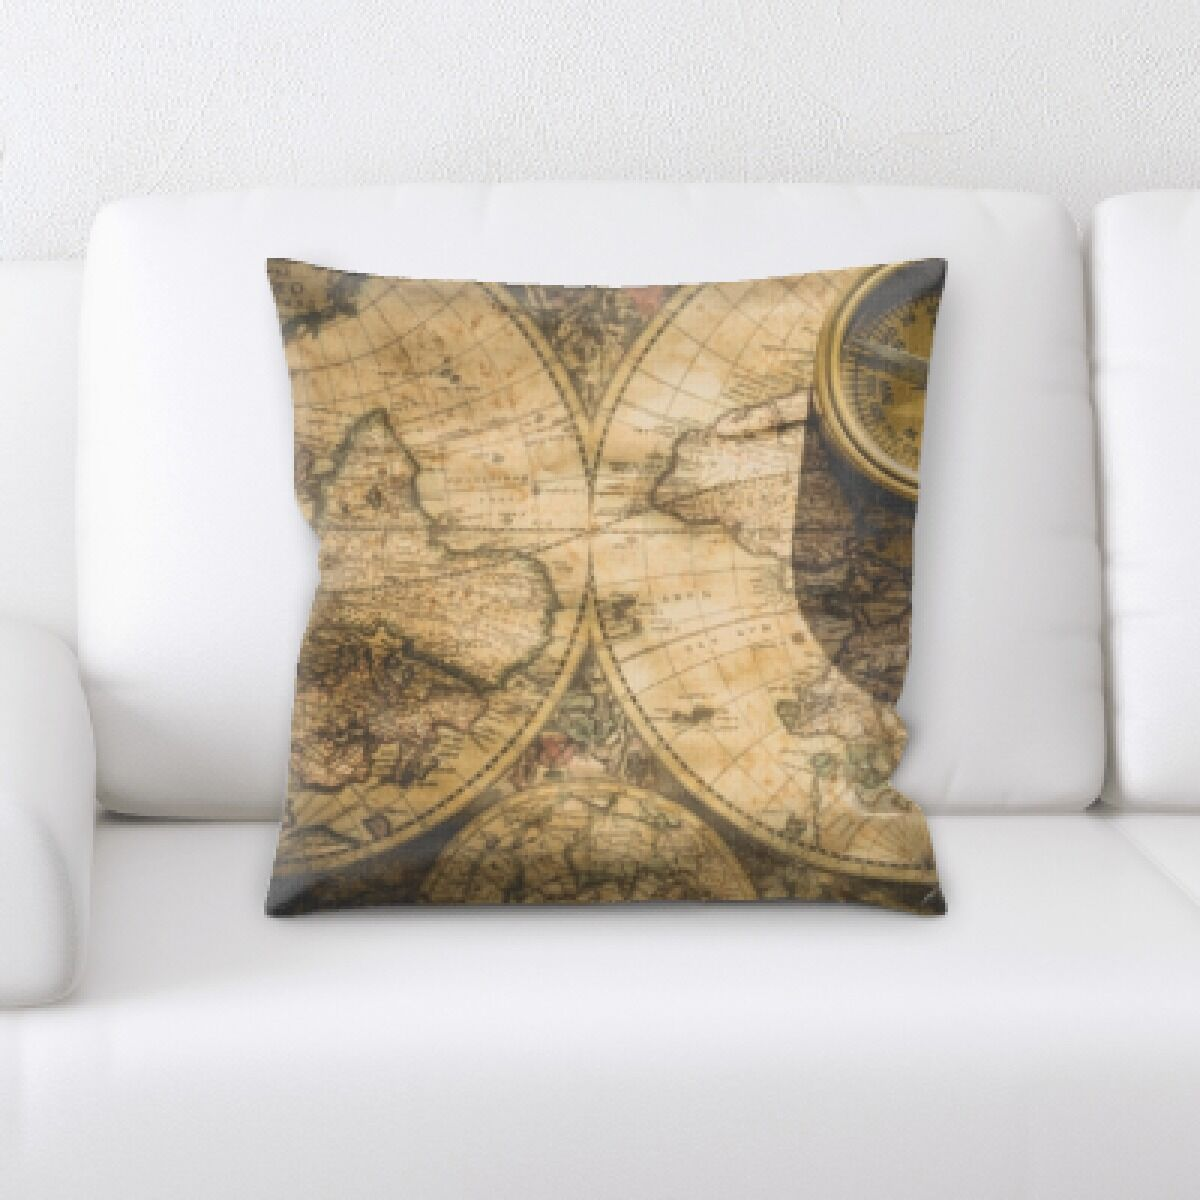 Wyton Map and a Campus Throw Pillow